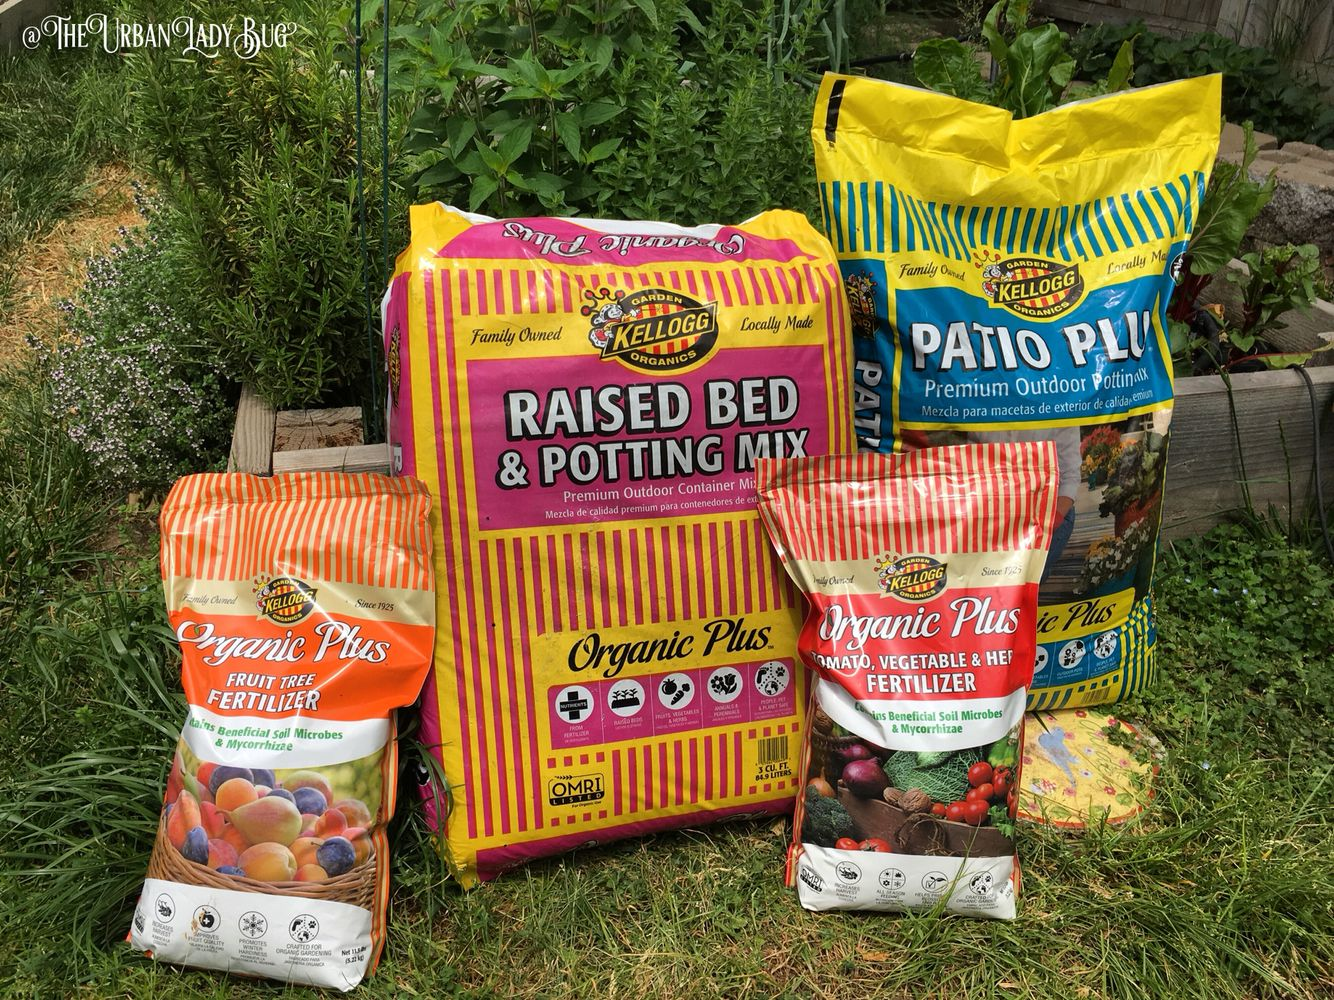 """We got two bags of soil, one """"Raised Bed & potting mix"""